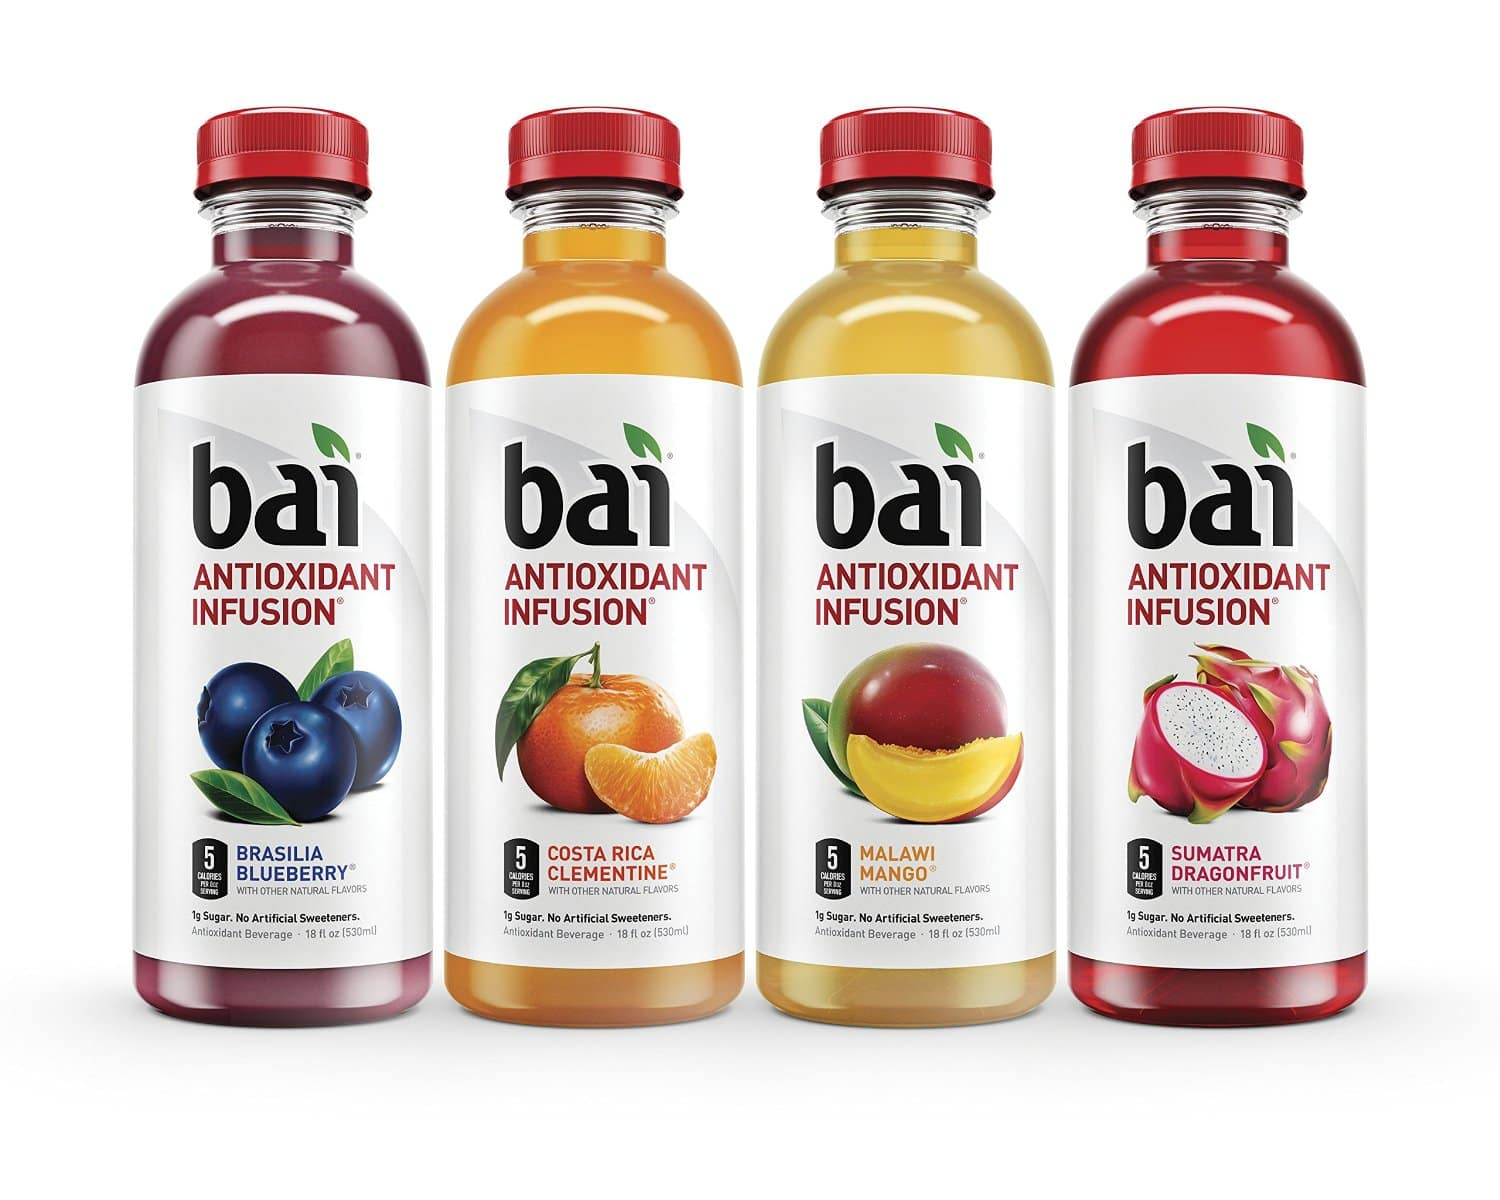 12-Pack of 18oz. Bai Antioxidant Infused Beverages (various)  from $13 + Free Shipping